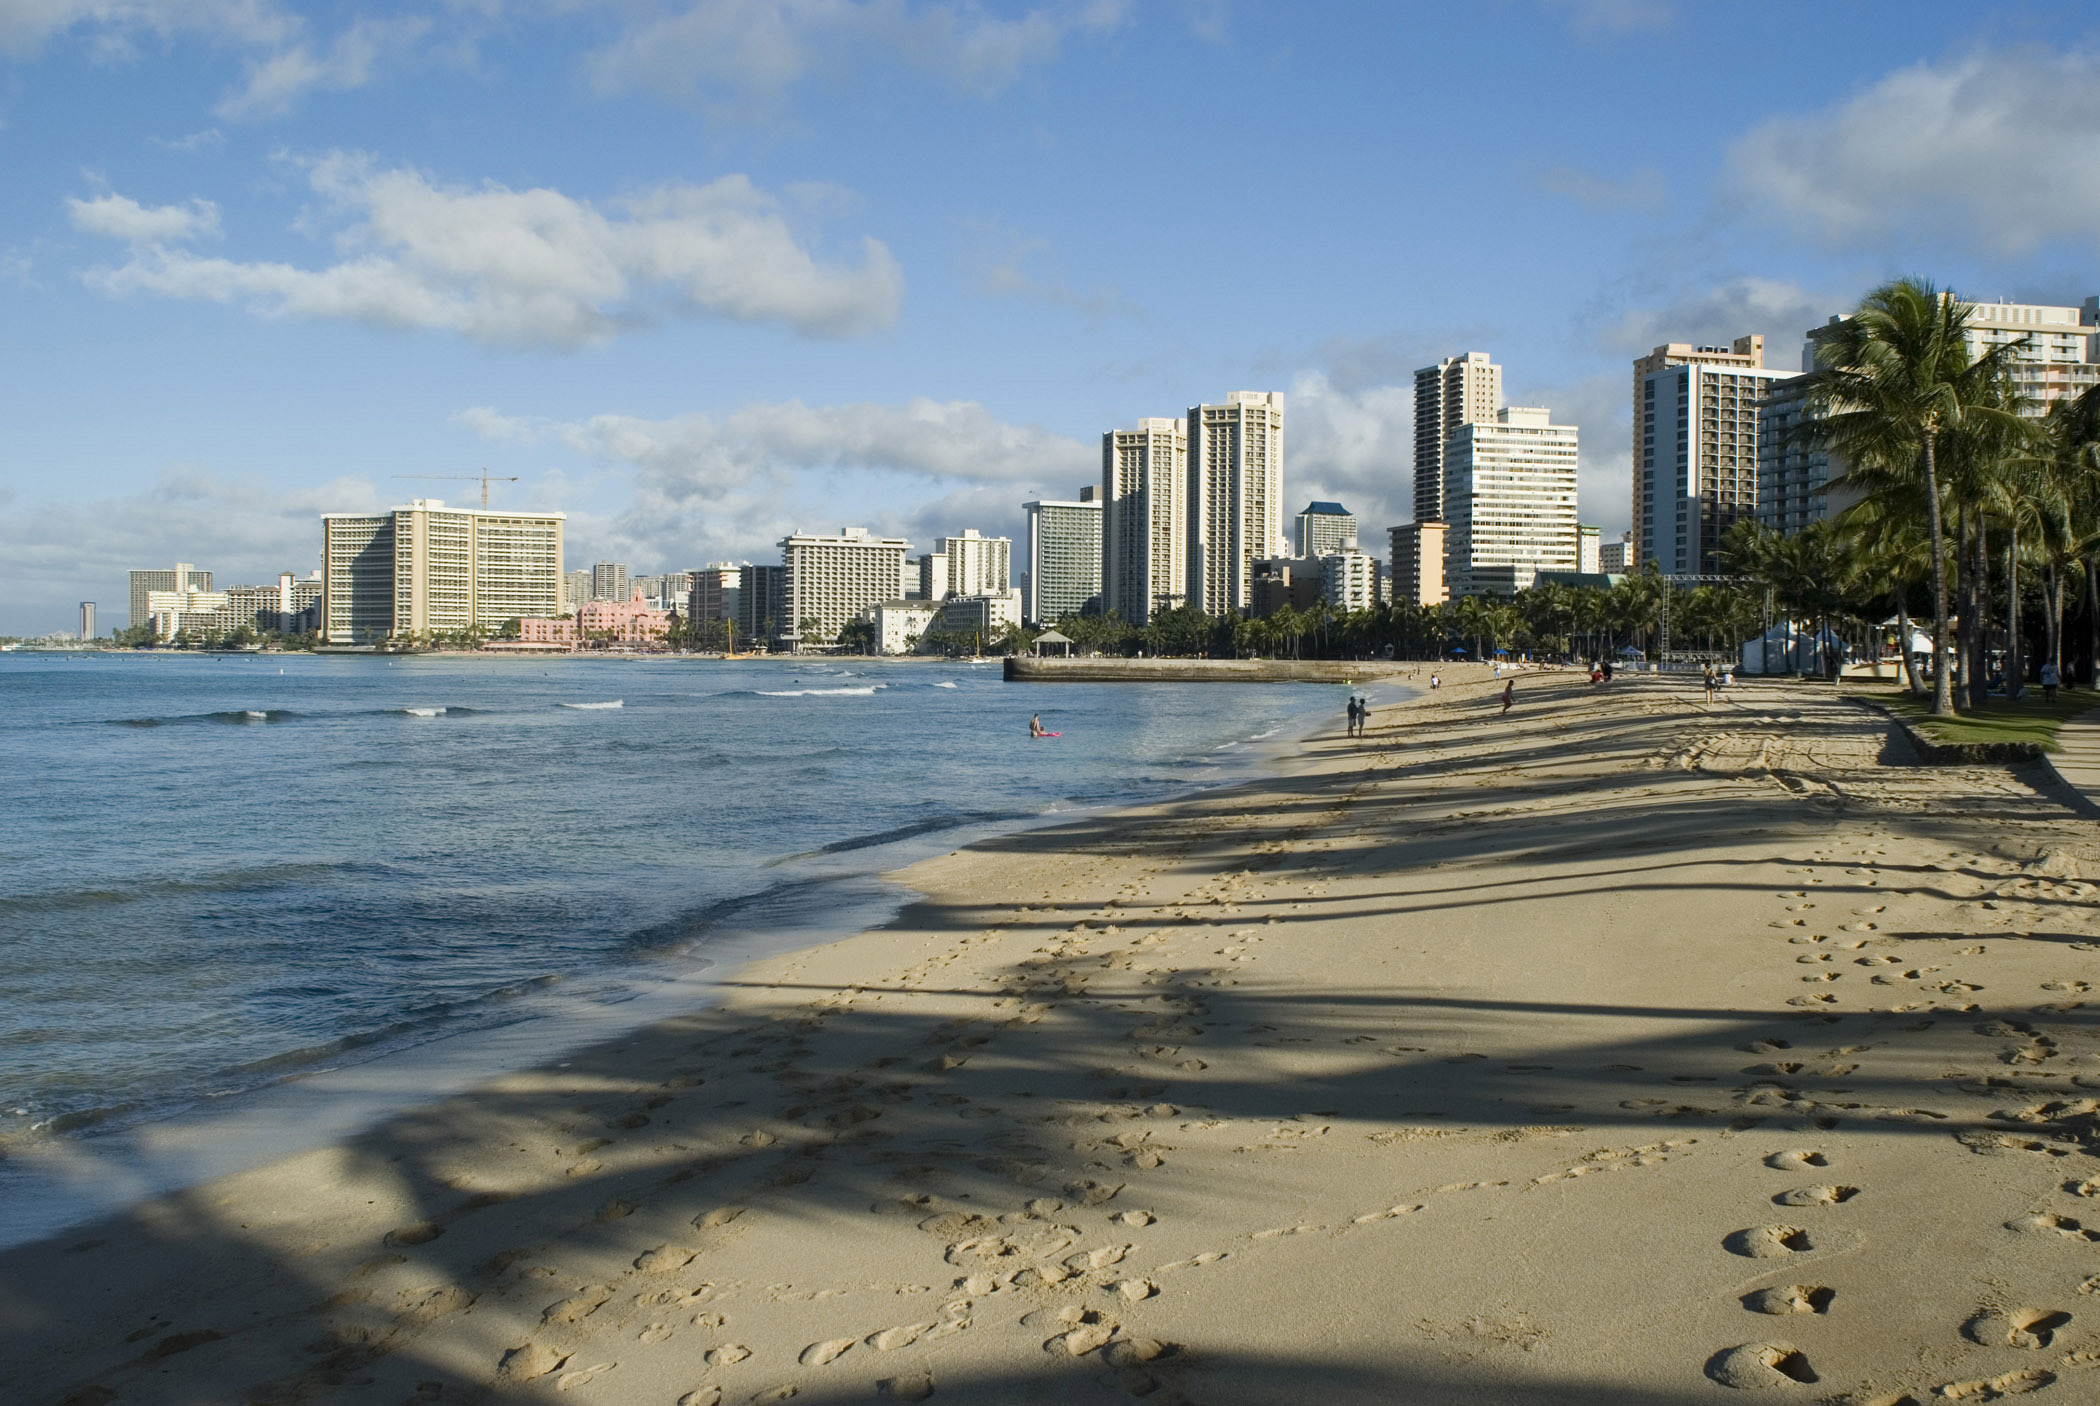 Scenic view of the waterfront and city skyline with footsteps across the golden sand of Waikiki beach, Honolulu, Hawaii